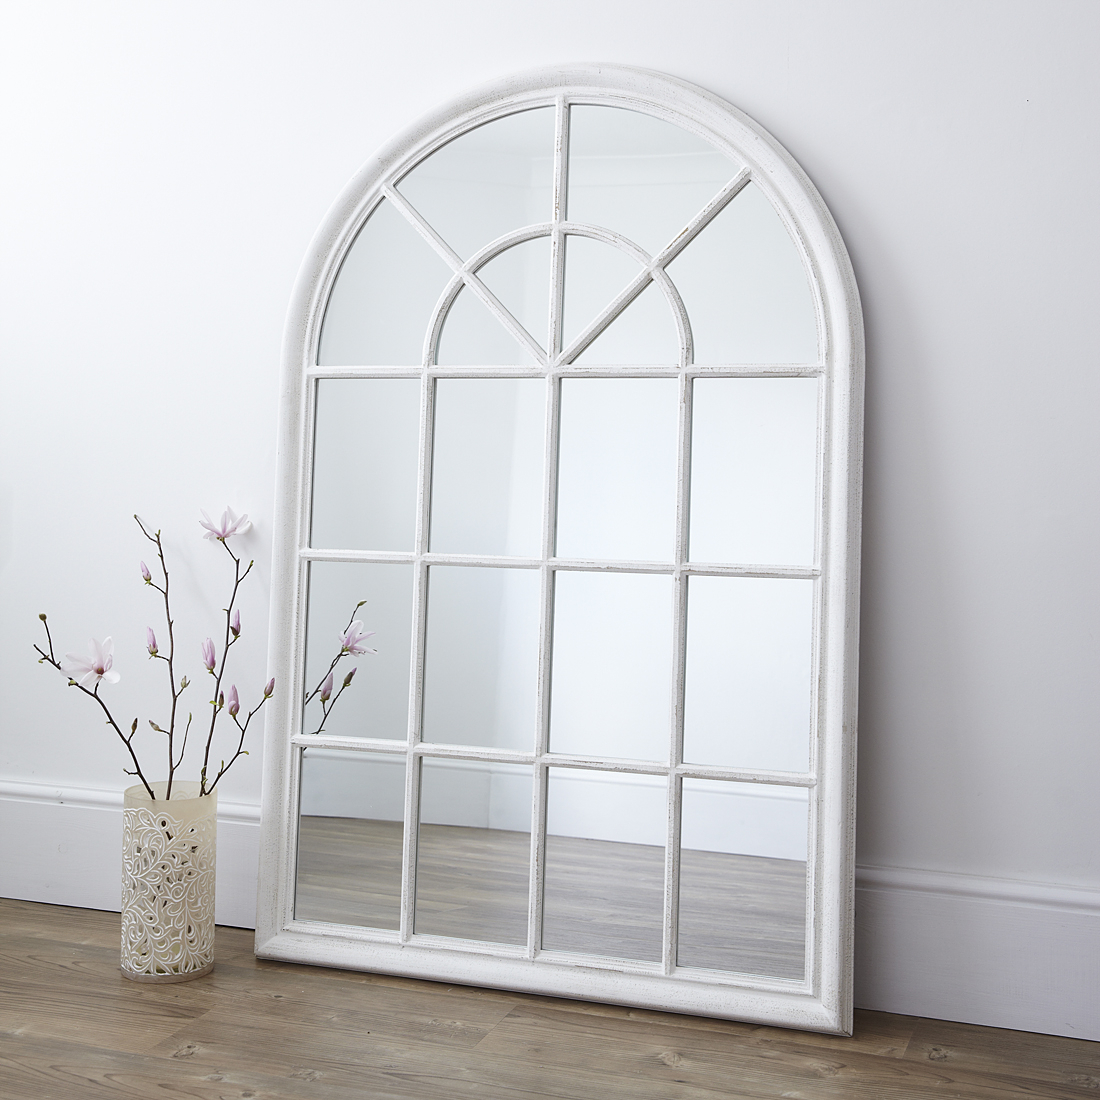 White Arched Window Wall Mirror Pertaining To Metal Arch Window Wall Mirrors (Image 20 of 20)